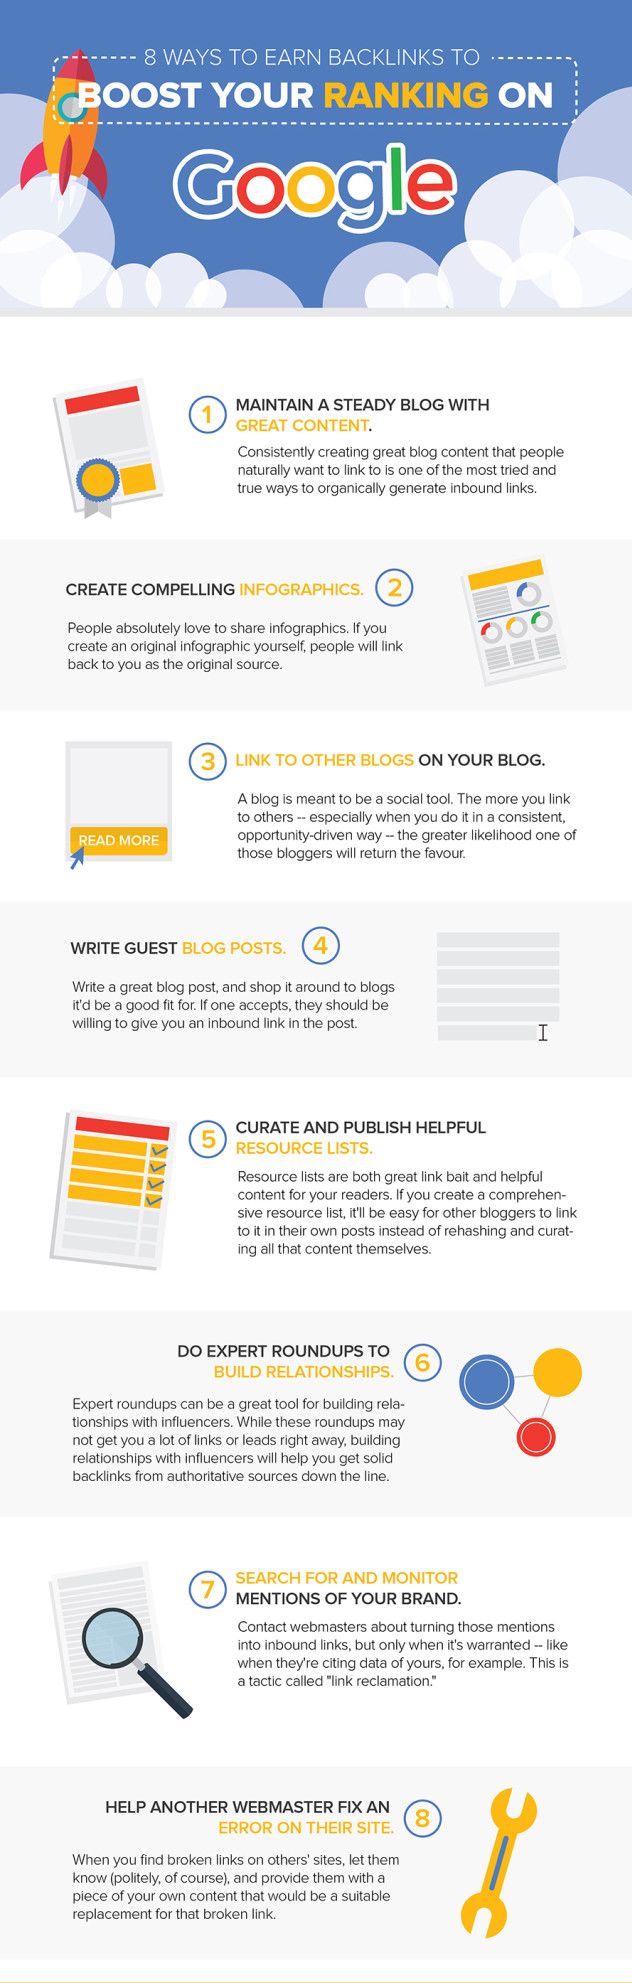 seo-tips-8-ways-to-earn-backlinks-that-boost-your-ranking-on-google1